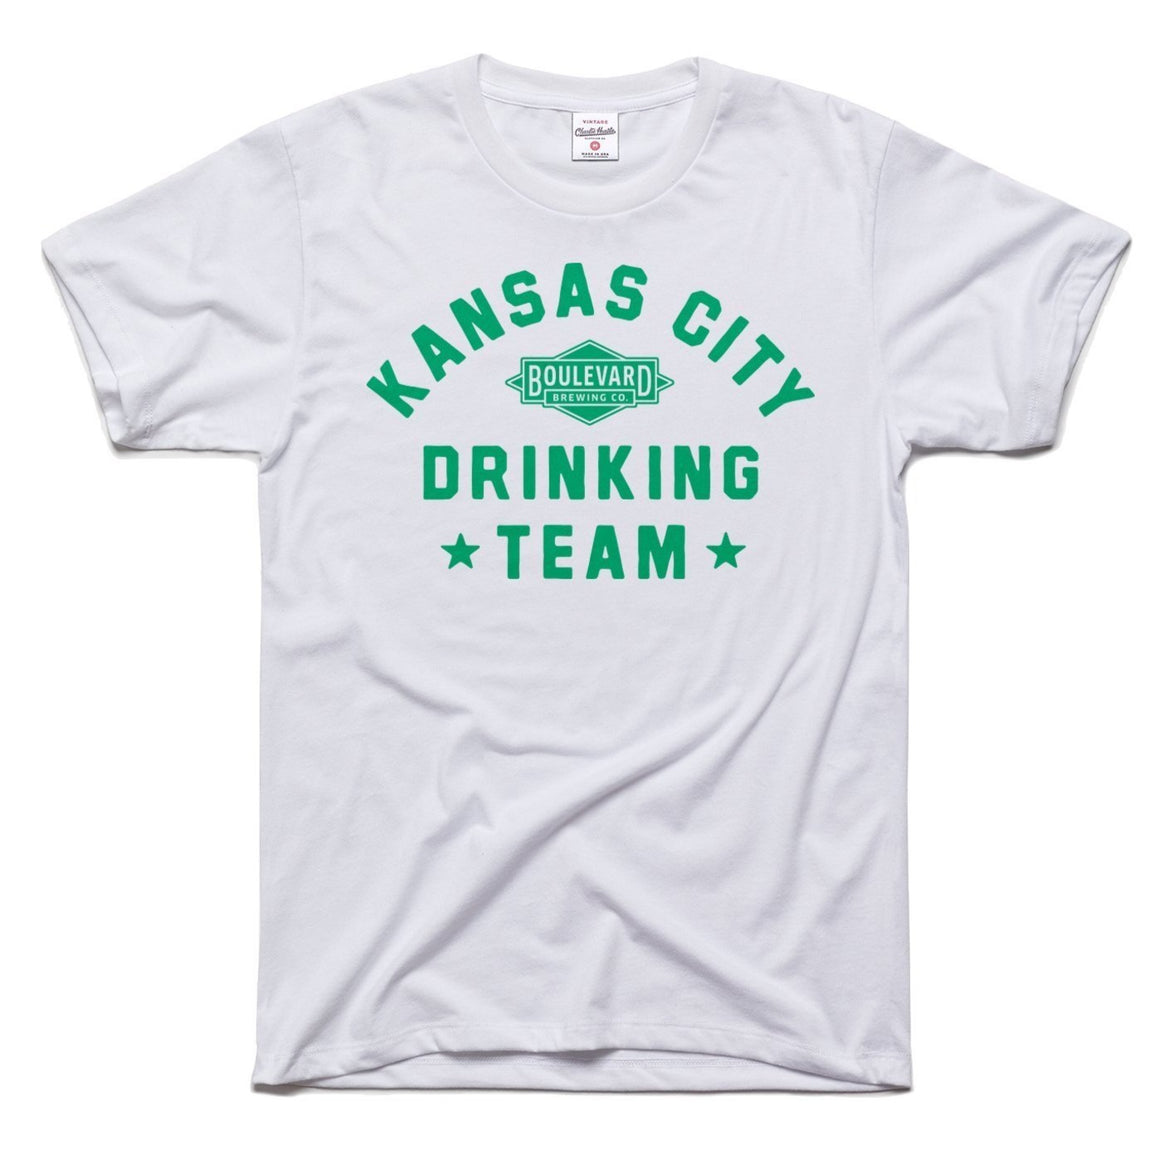 CHARLIE HUSTLE | BOULEVARD BREWING ST. PATRICK'S DAY DRINKING TEAM